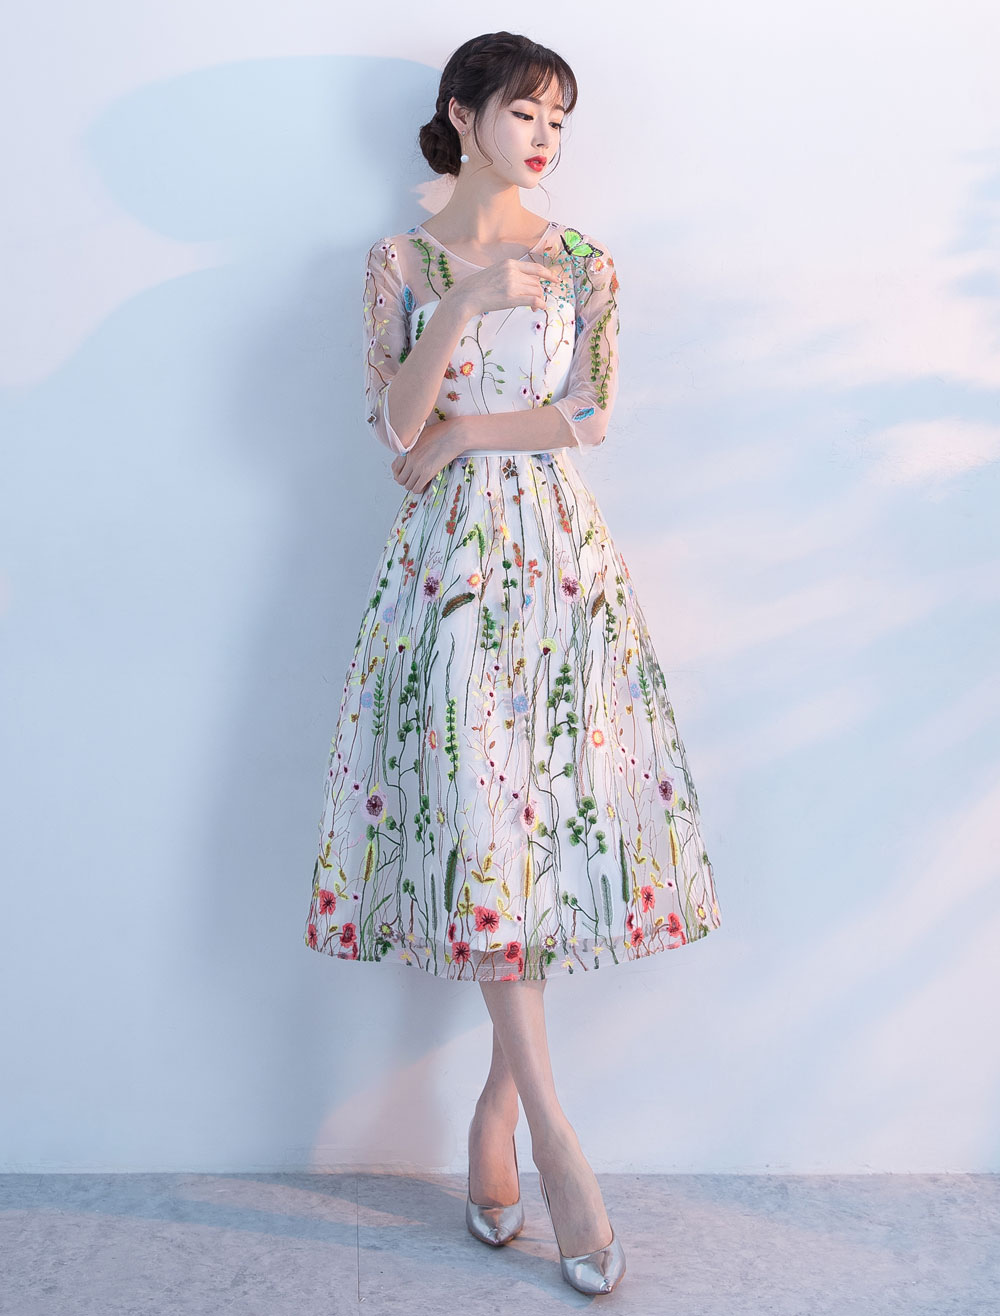 Buy Lace Prom Dresses 2018 Short Floral Print Cocktail Dress Illusion Half Sleeve Tea Length Party Dress for $114.39 in Milanoo store